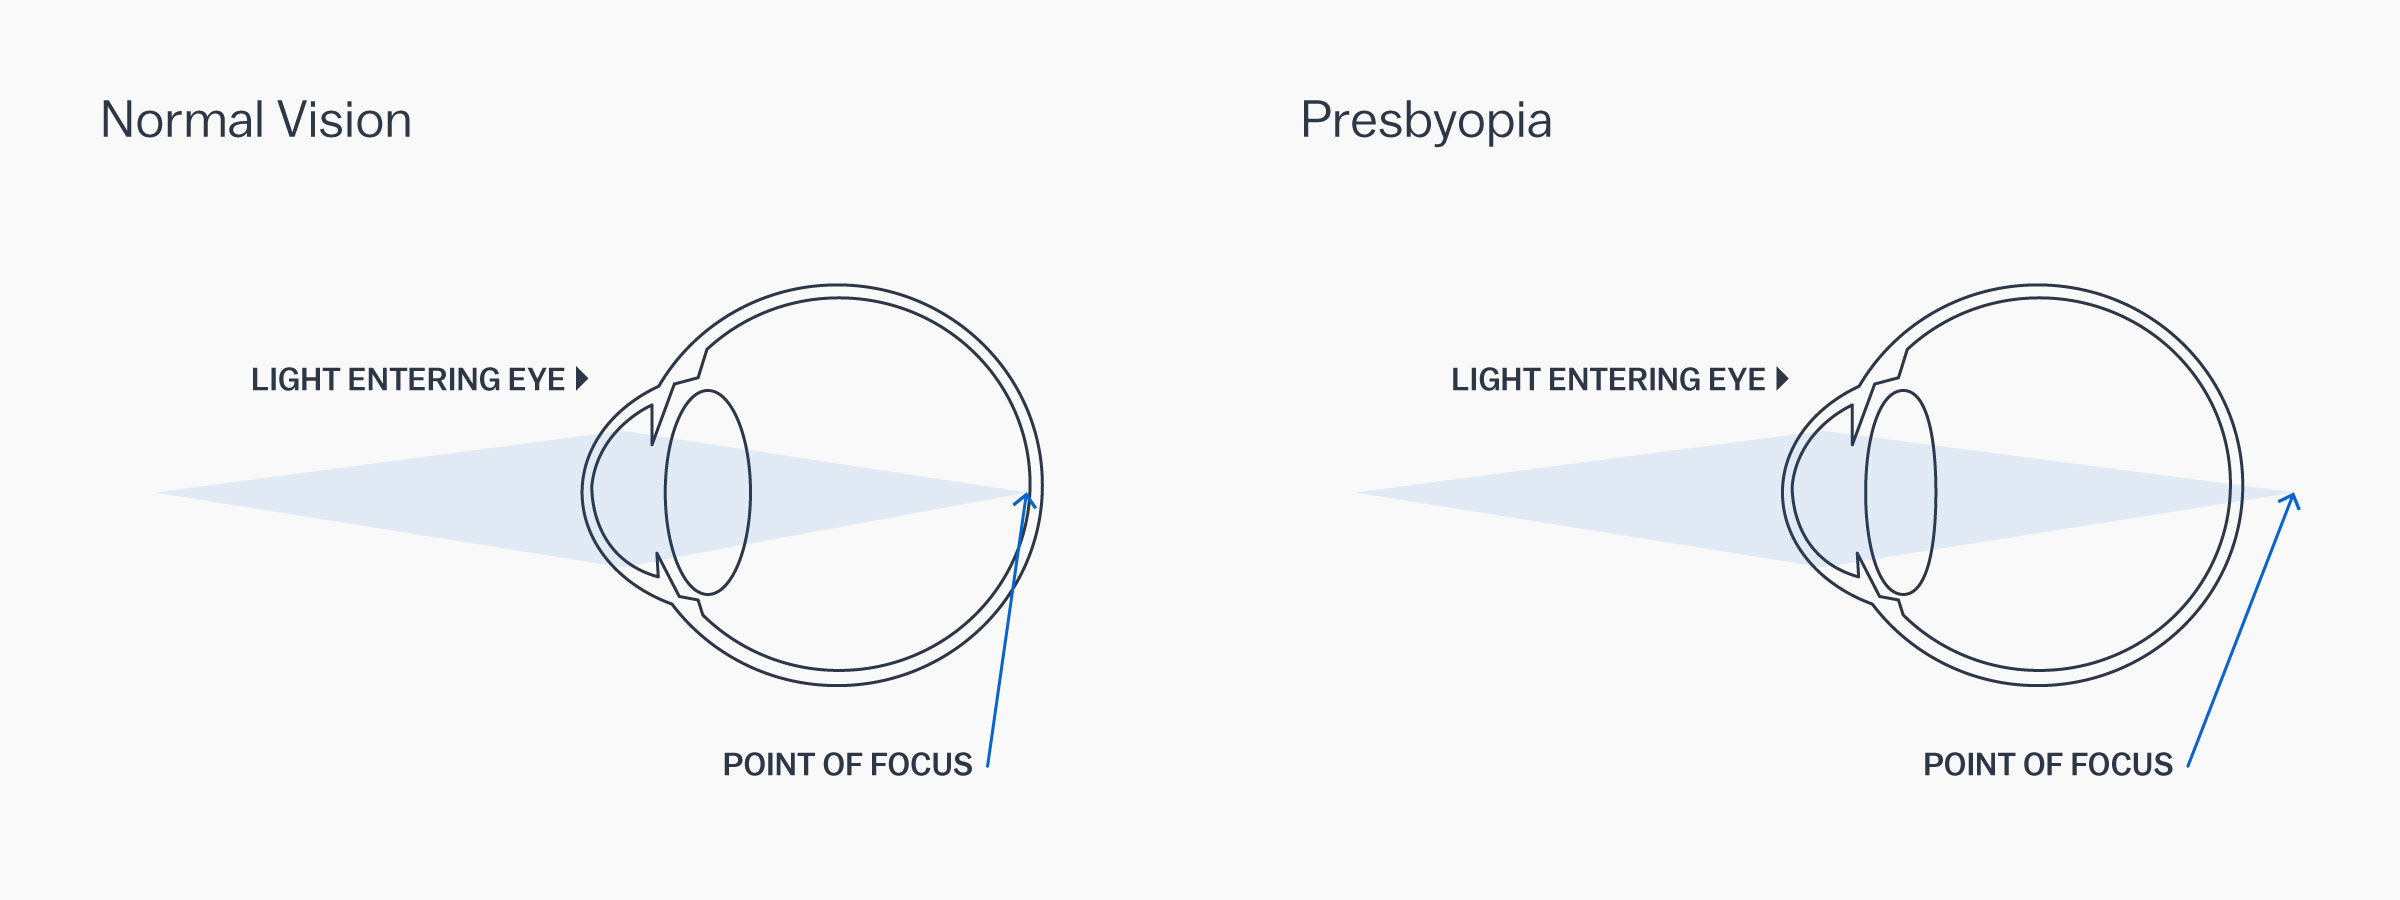 A graphic showing how presbyopia affects the eye